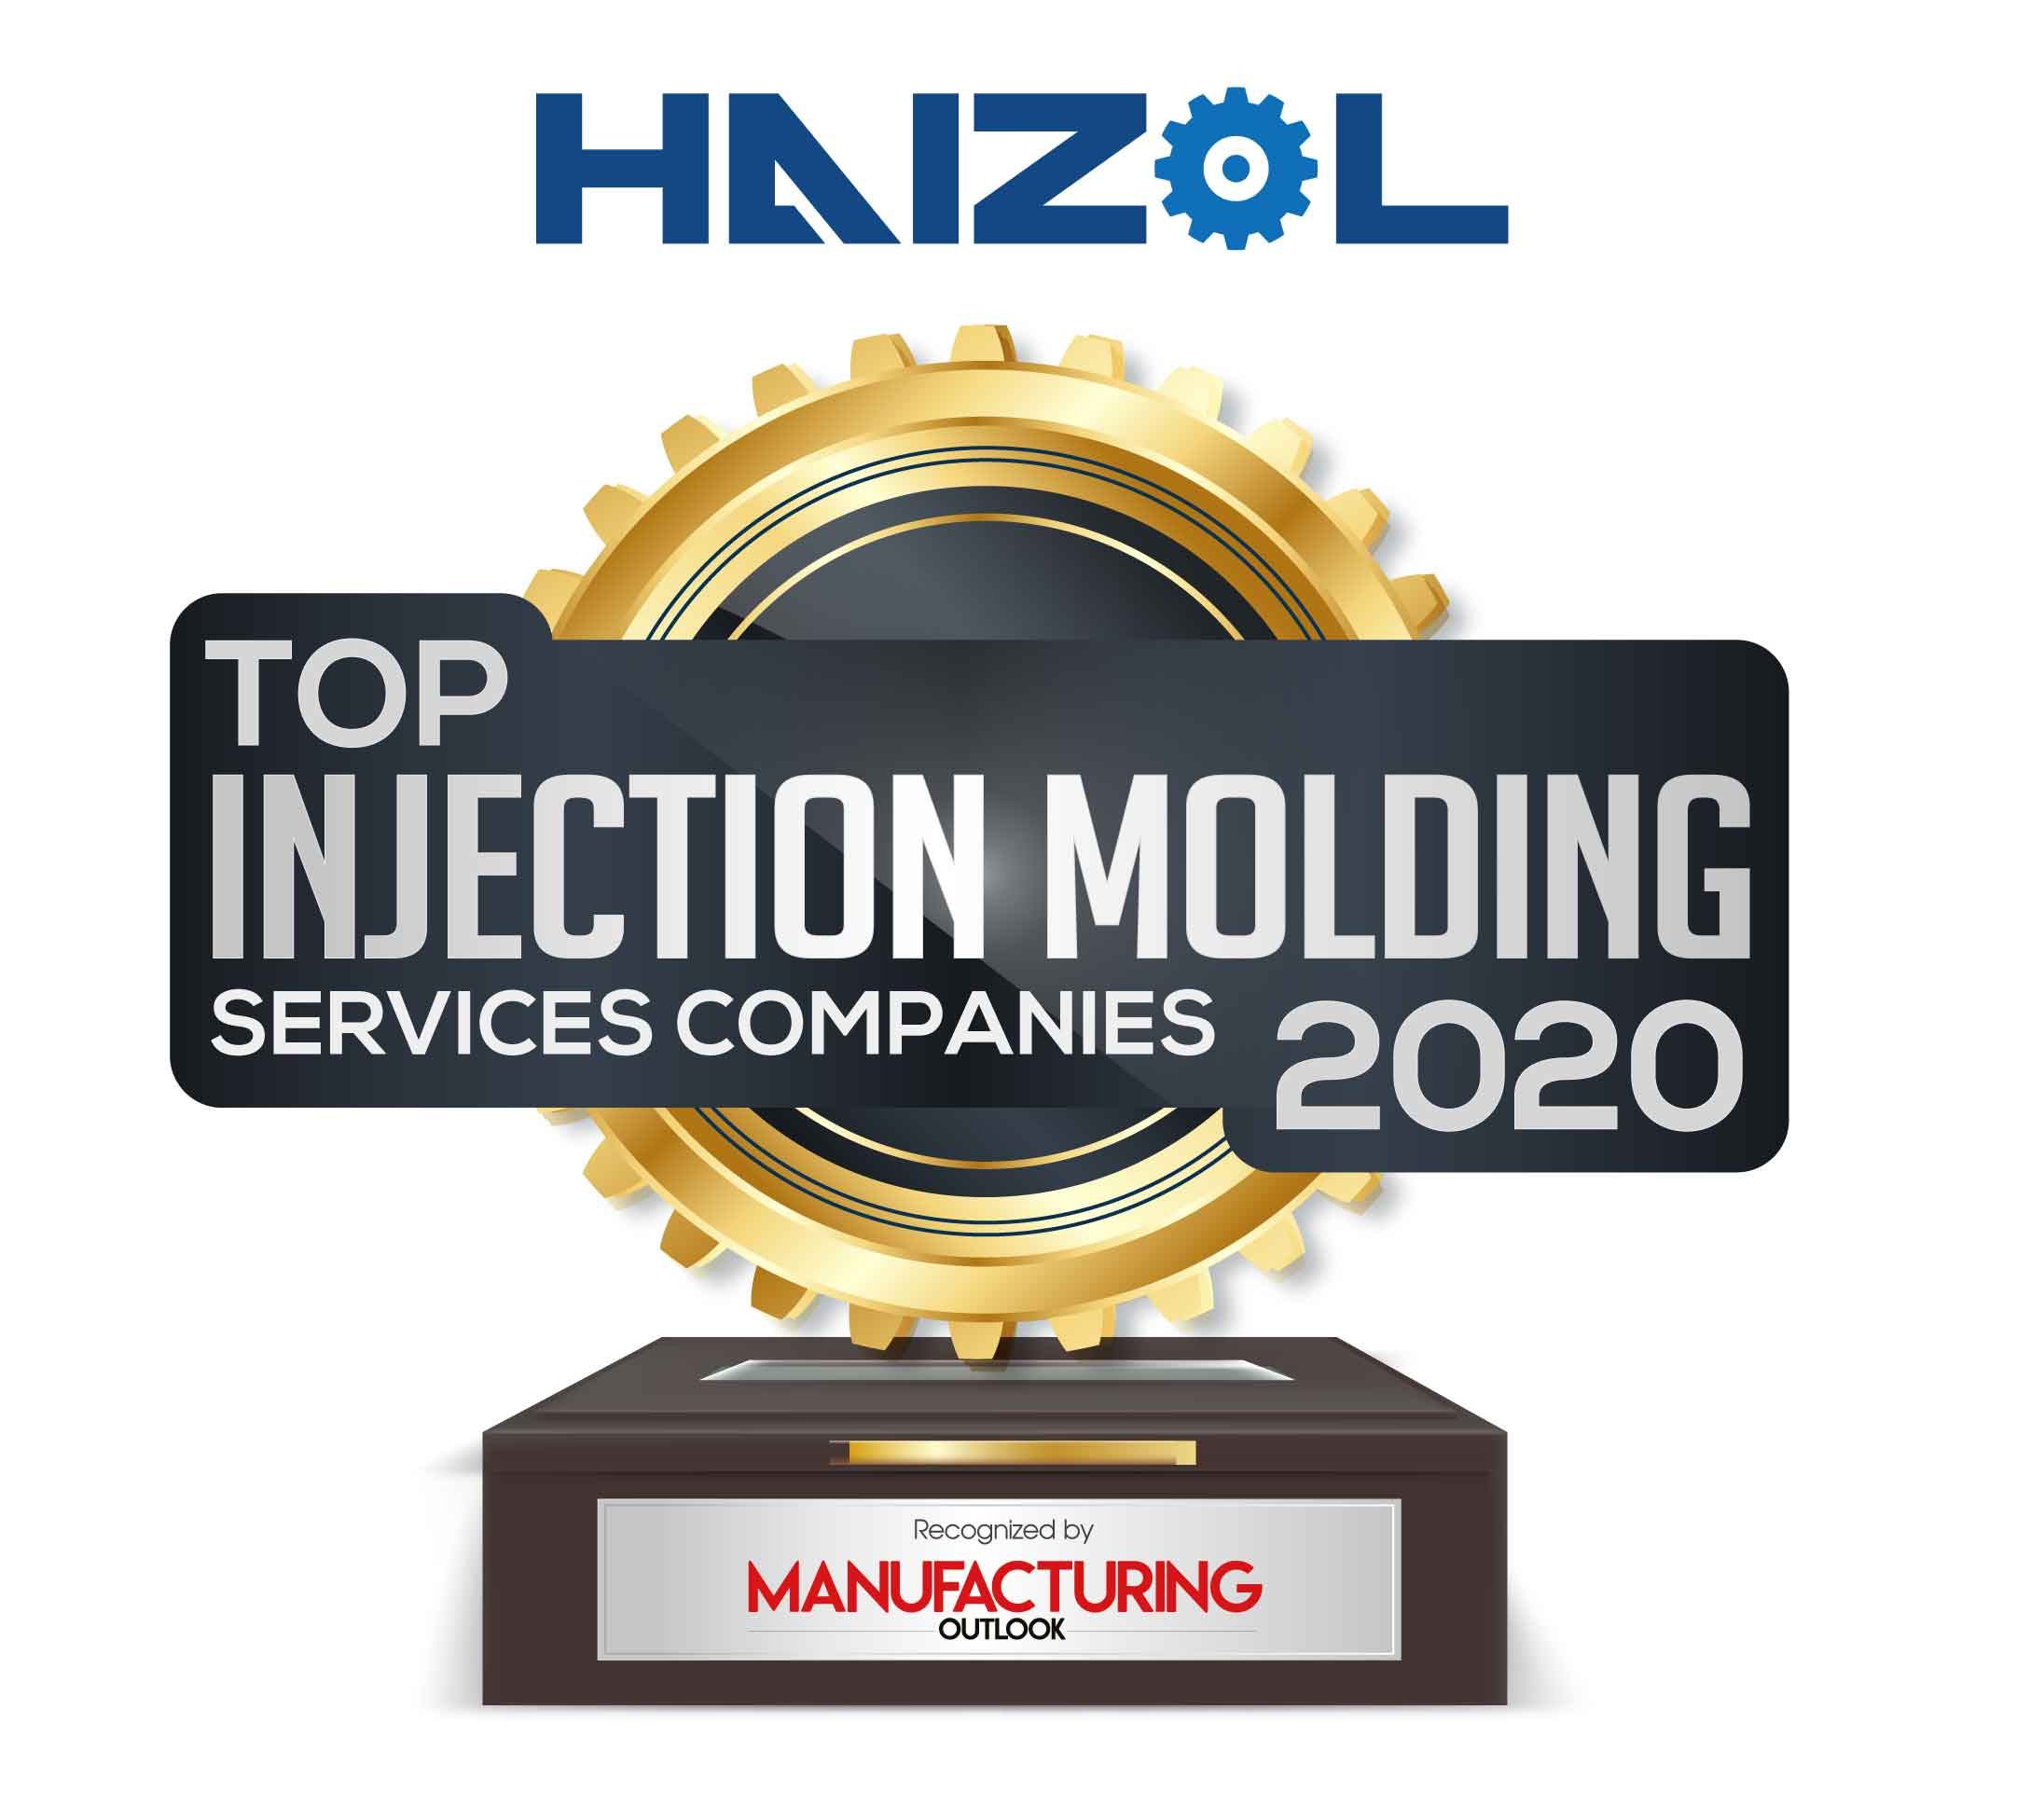 Top 10 Injection Molding Service Companies - 2020